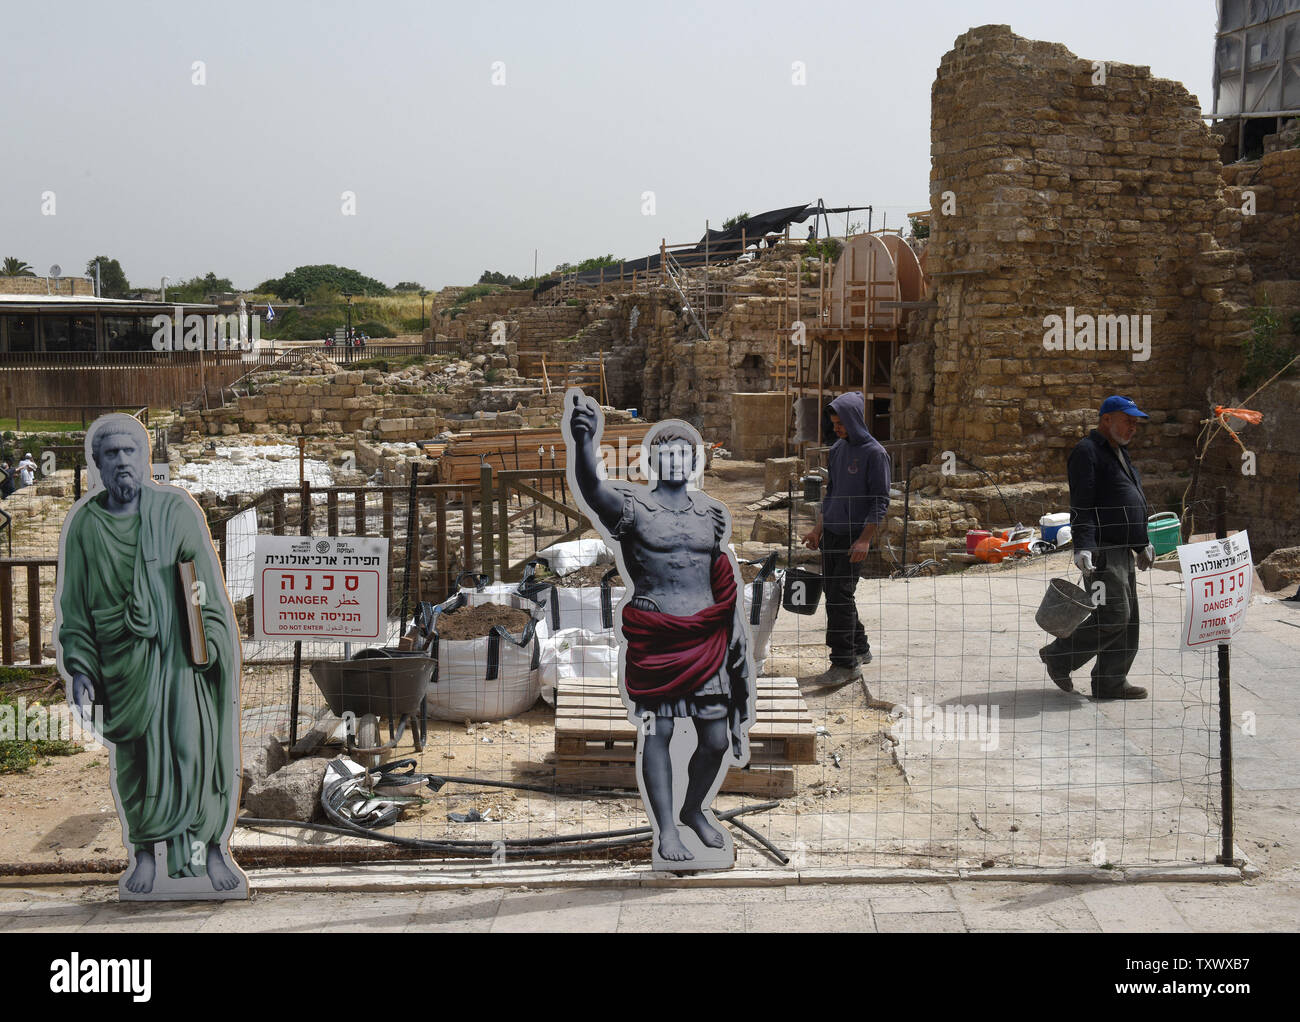 Workers carry buckets of dirt at the 'Roma and Augusta Temple' that is being excavated by the Israeli Antiquity Authority in Caesarea, Israel, April 26, 2017. The Temple was constructed in the first century by King Herod in honor of Augustus Caesar. The Edmond de Rothschild Foundations is investing approximately $275,000 to expose and restore Caesarea's hidden treasures.  Photo by Debbie Hill/UPI - Stock Image